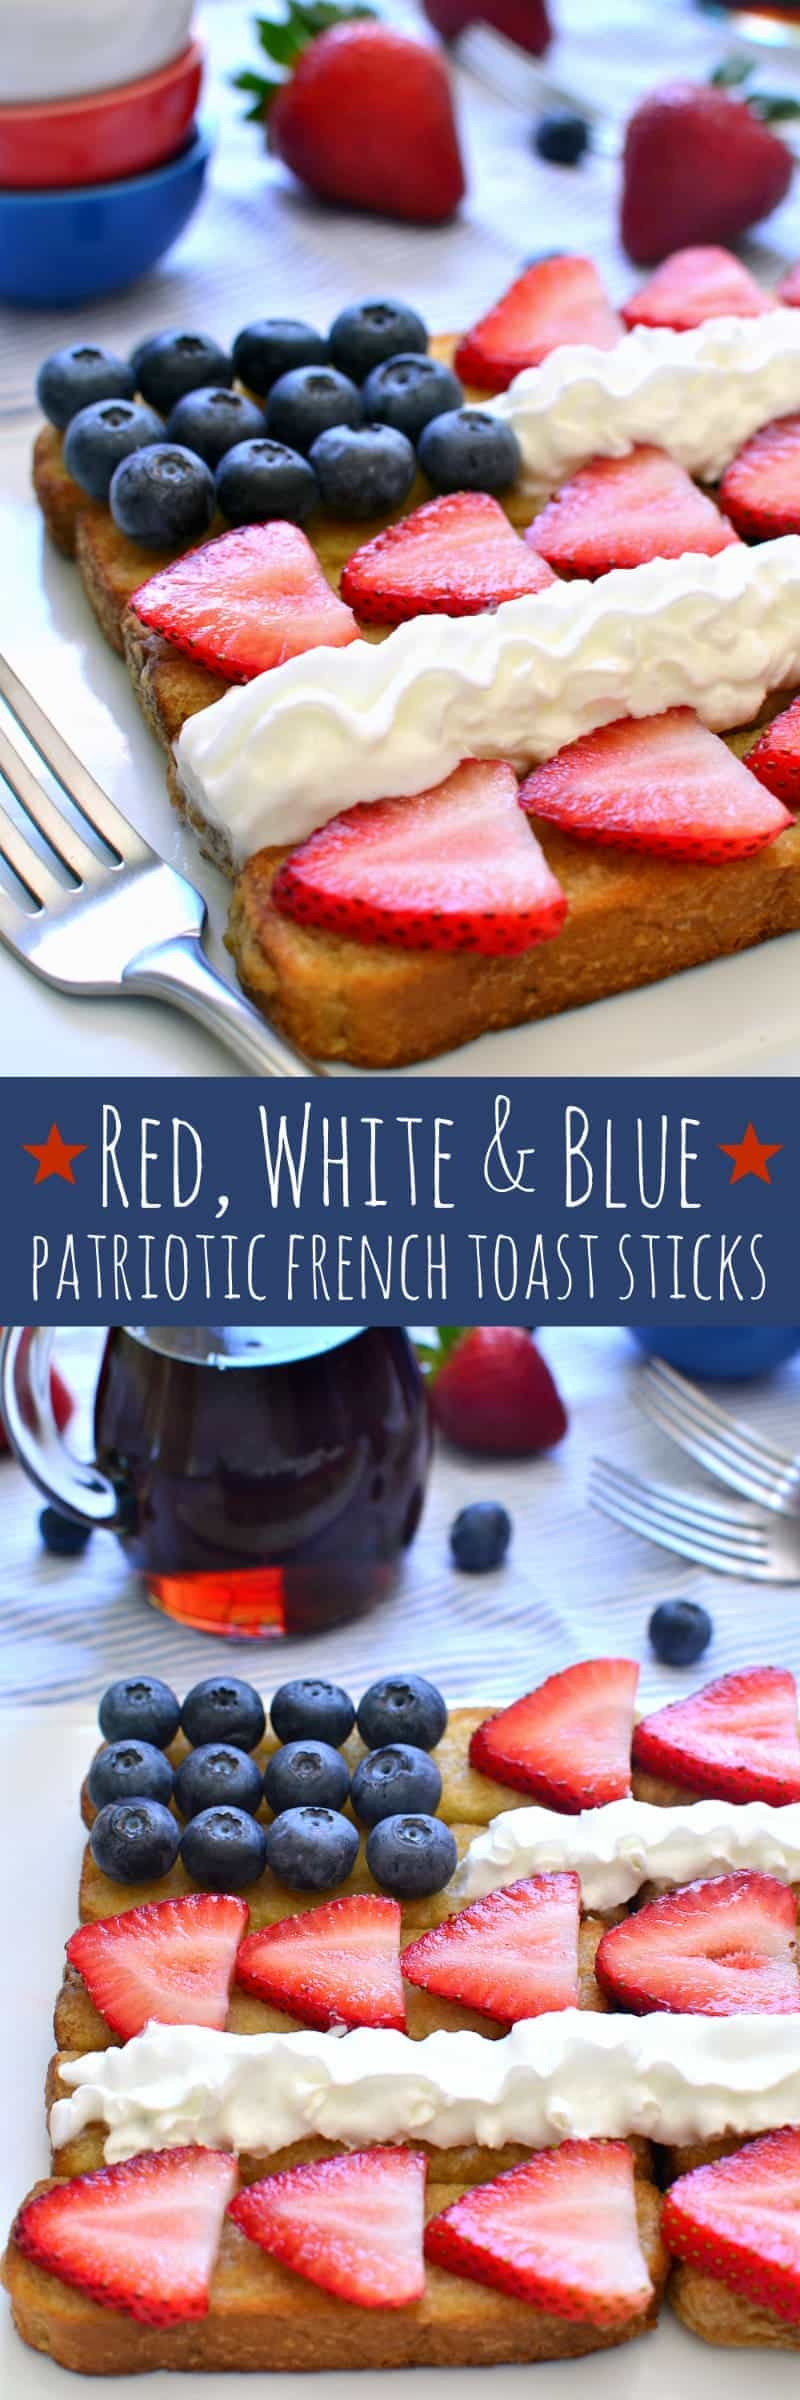 These Red, White & Blue Patriotic French Toast Sticks are fun, easy, and delicious....and so perfect for the 4th of July!